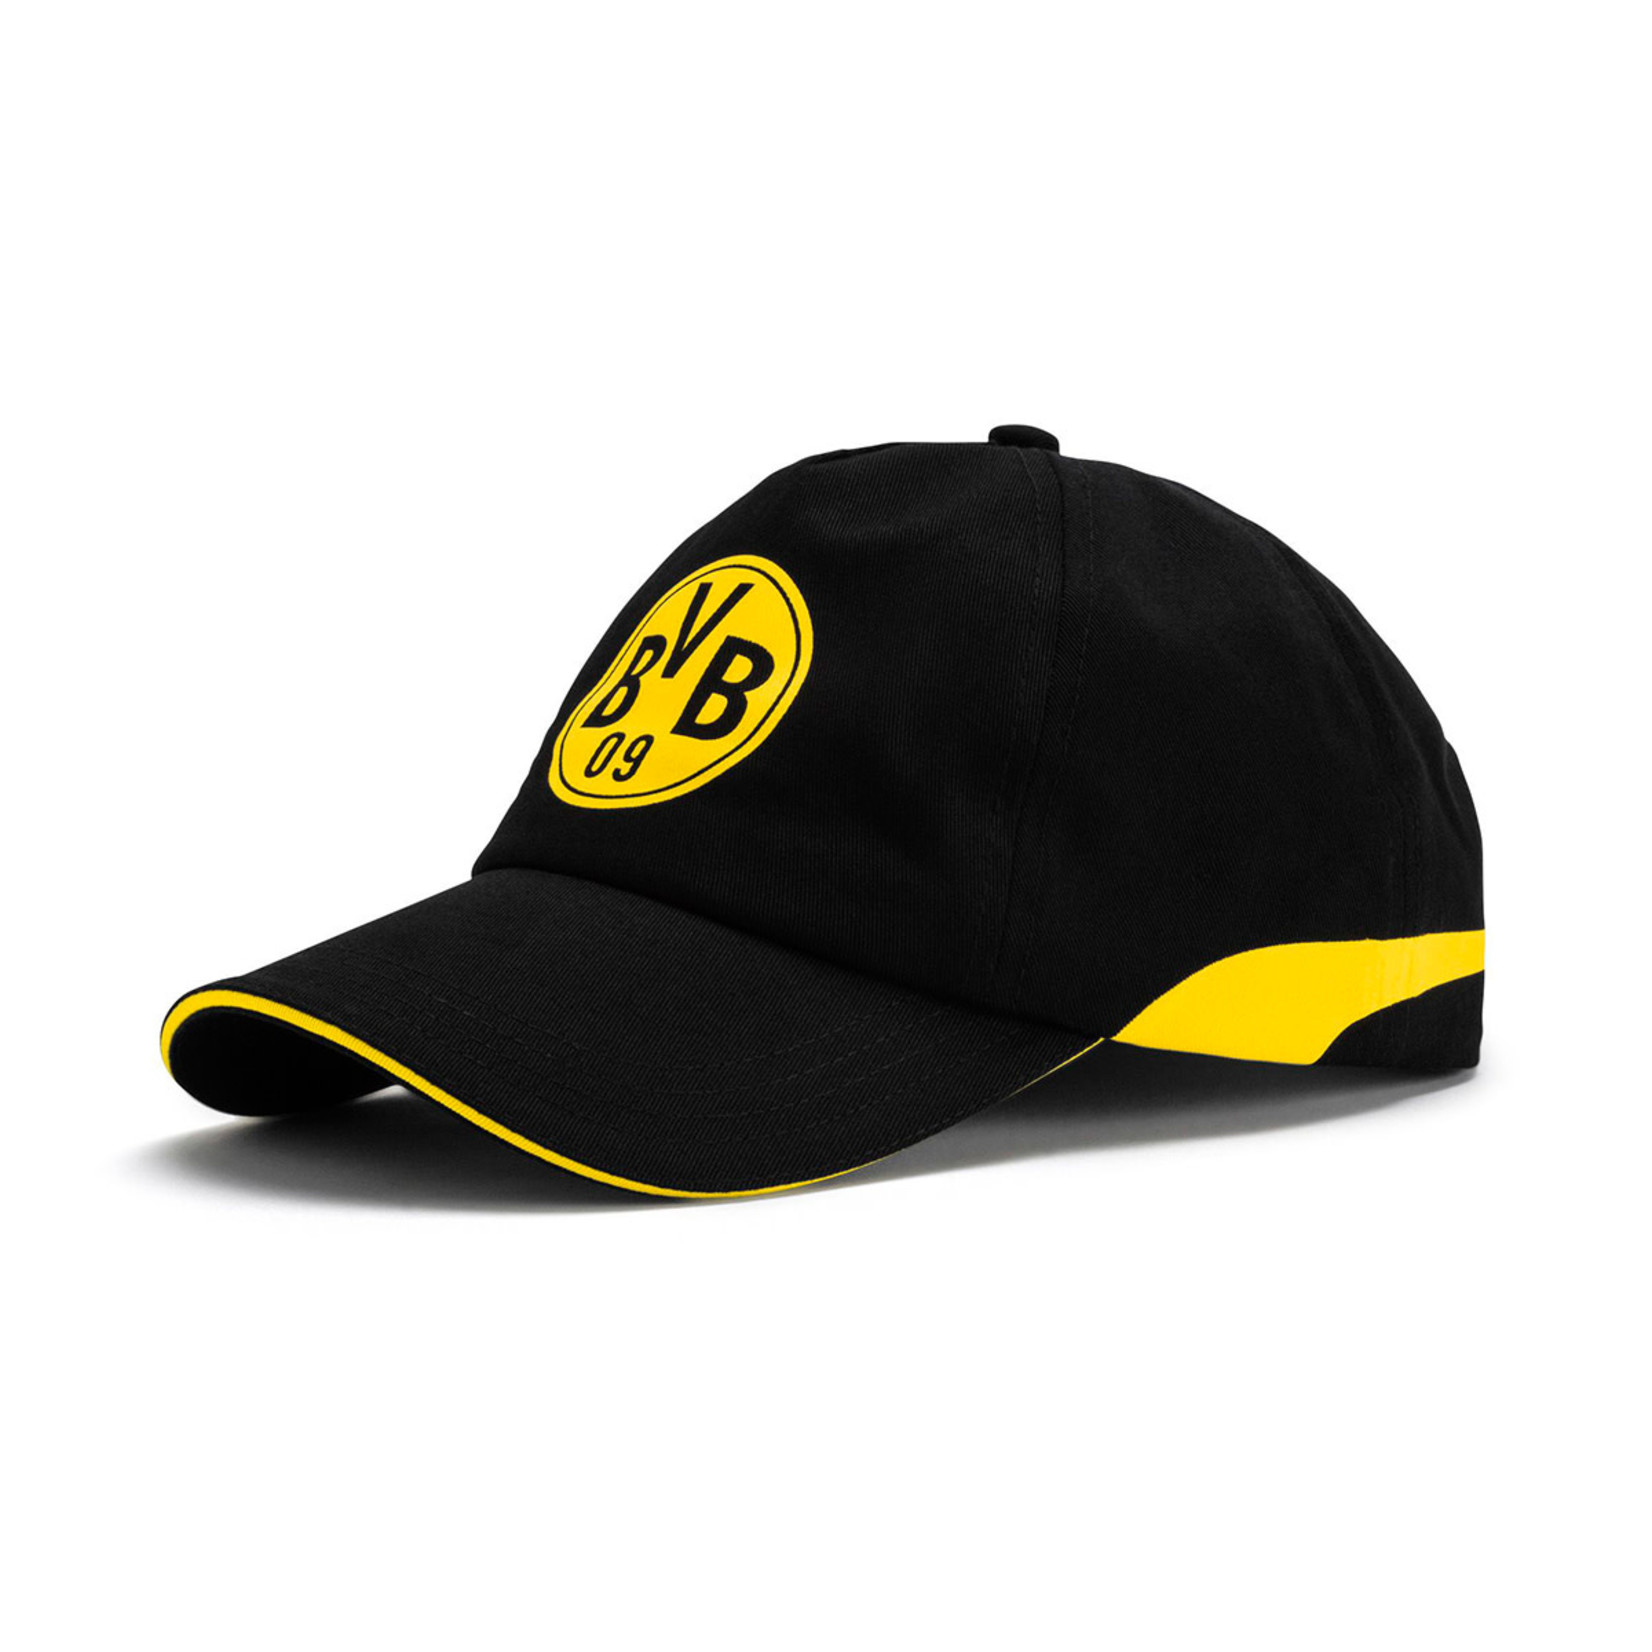 PUMA DORTMUND TRAINING CAP